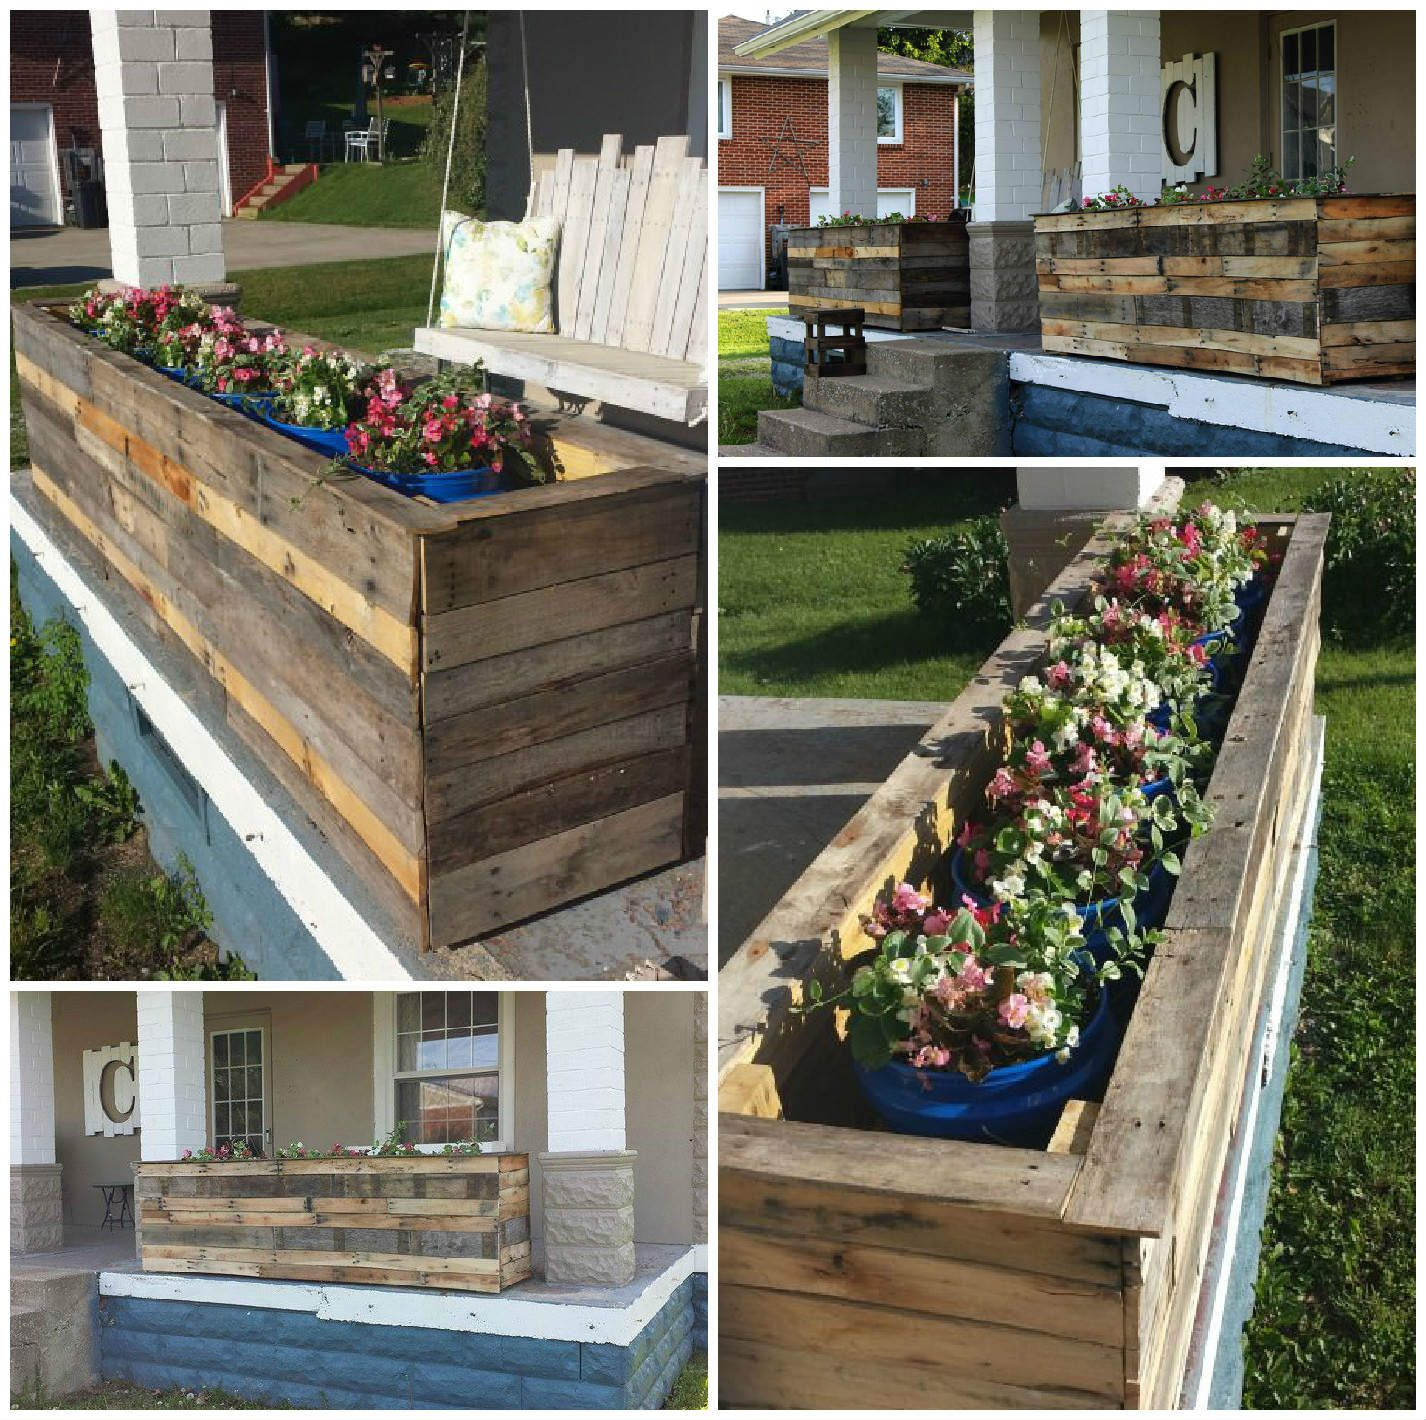 Diy Flower Gardening Ideas And Planter Projects: Outdoor Pallet Projects & Ideas